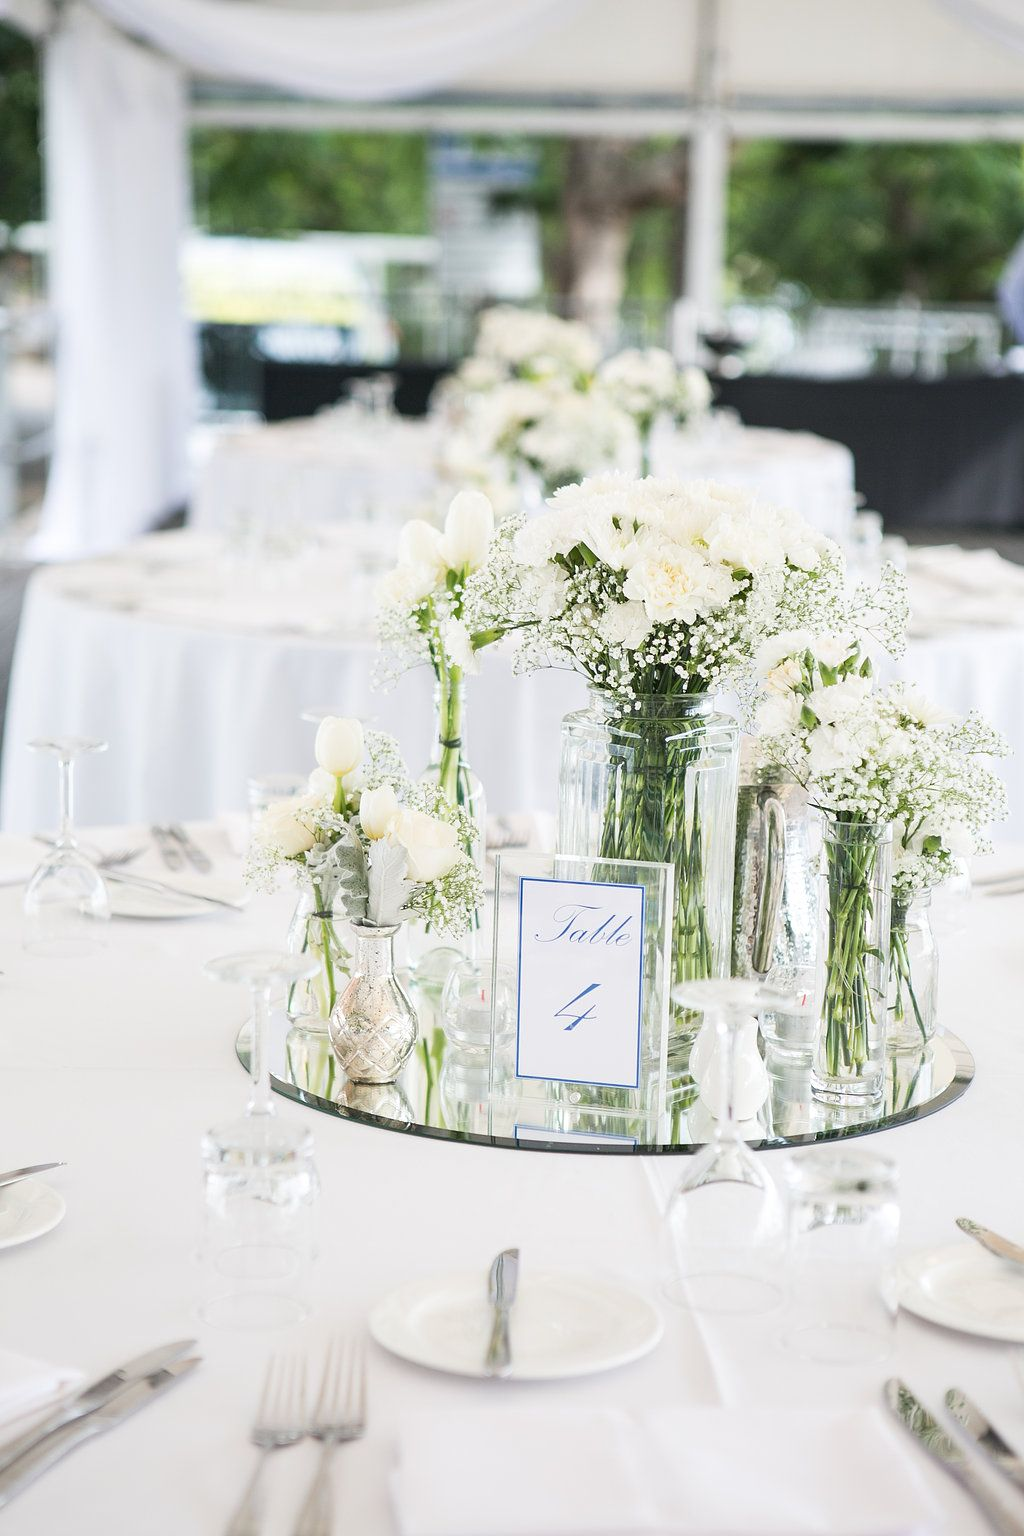 White wedding table flowers Mirror base white table